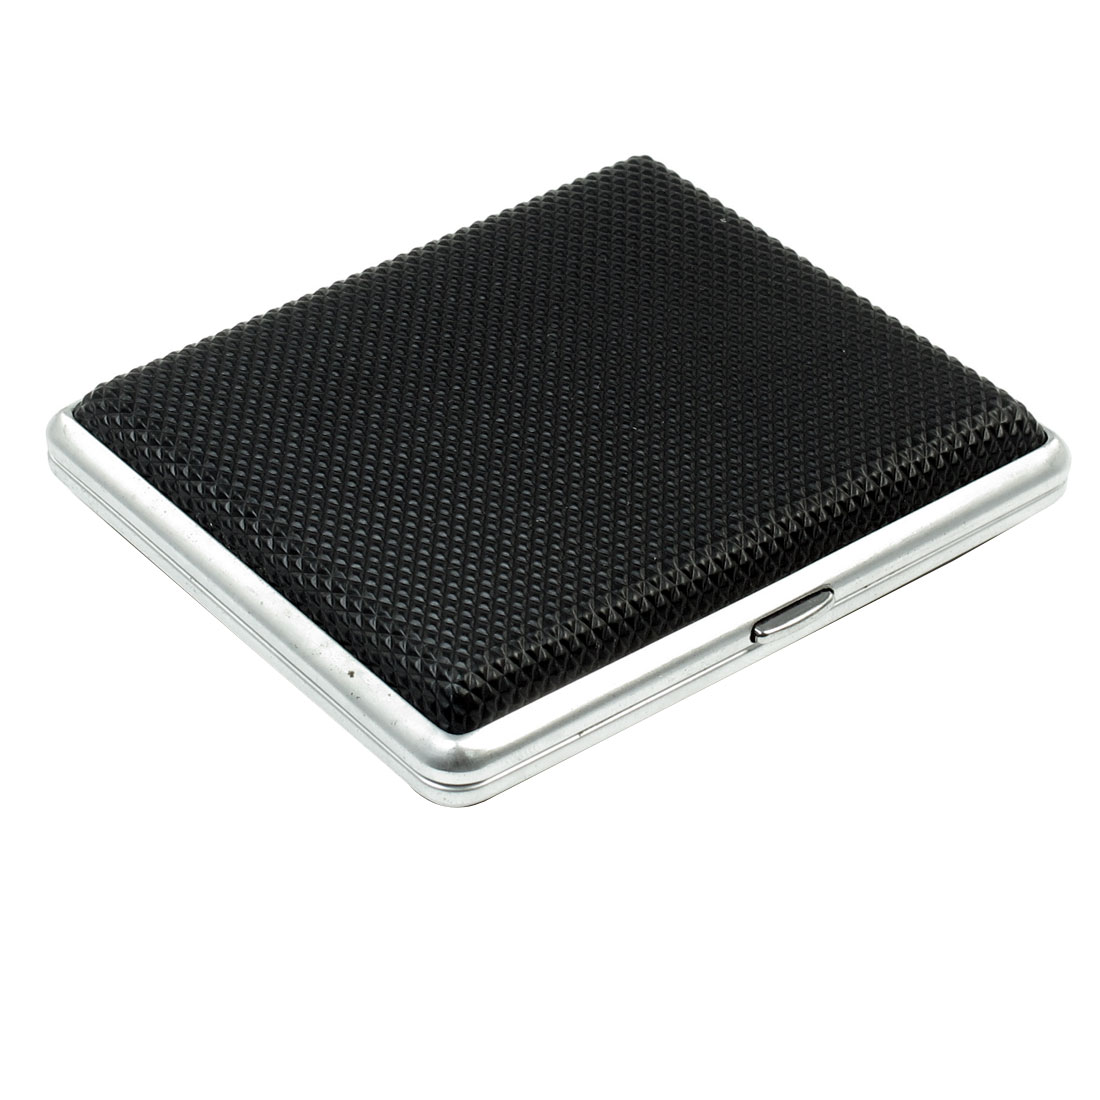 Business Rhomb Pattern Black Plastic Coated Metal Cigarettes Tobacco Box Case